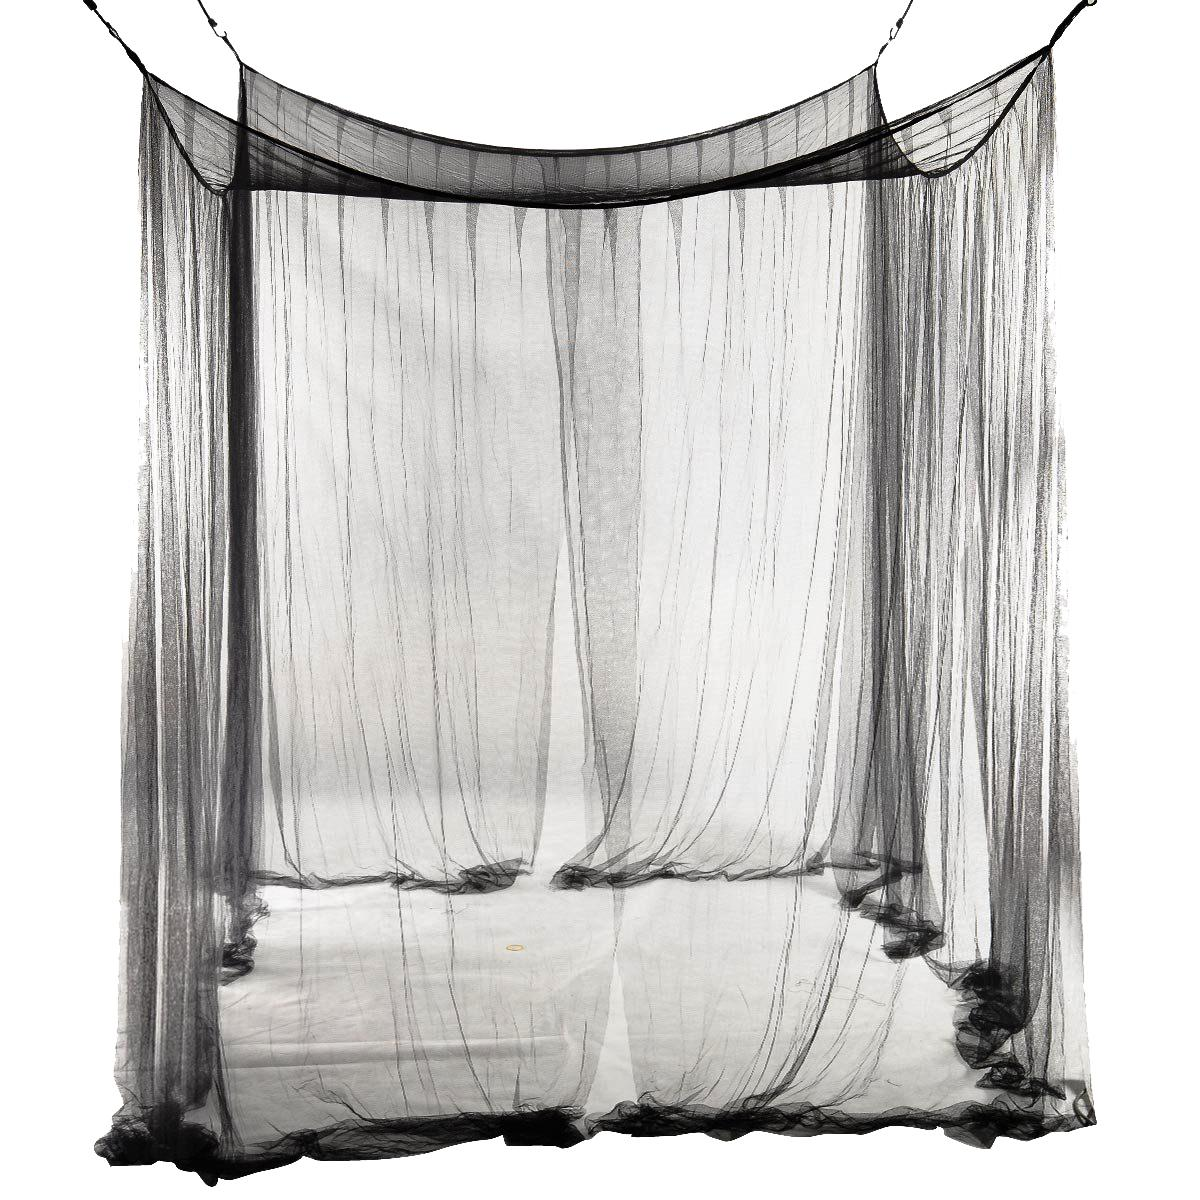 4-Corner Bed Rede Canopy Mosquito Net para Queen / cama king size 190 * 210 * 240 centímetros (Black) Bed Curtain Room Decoration